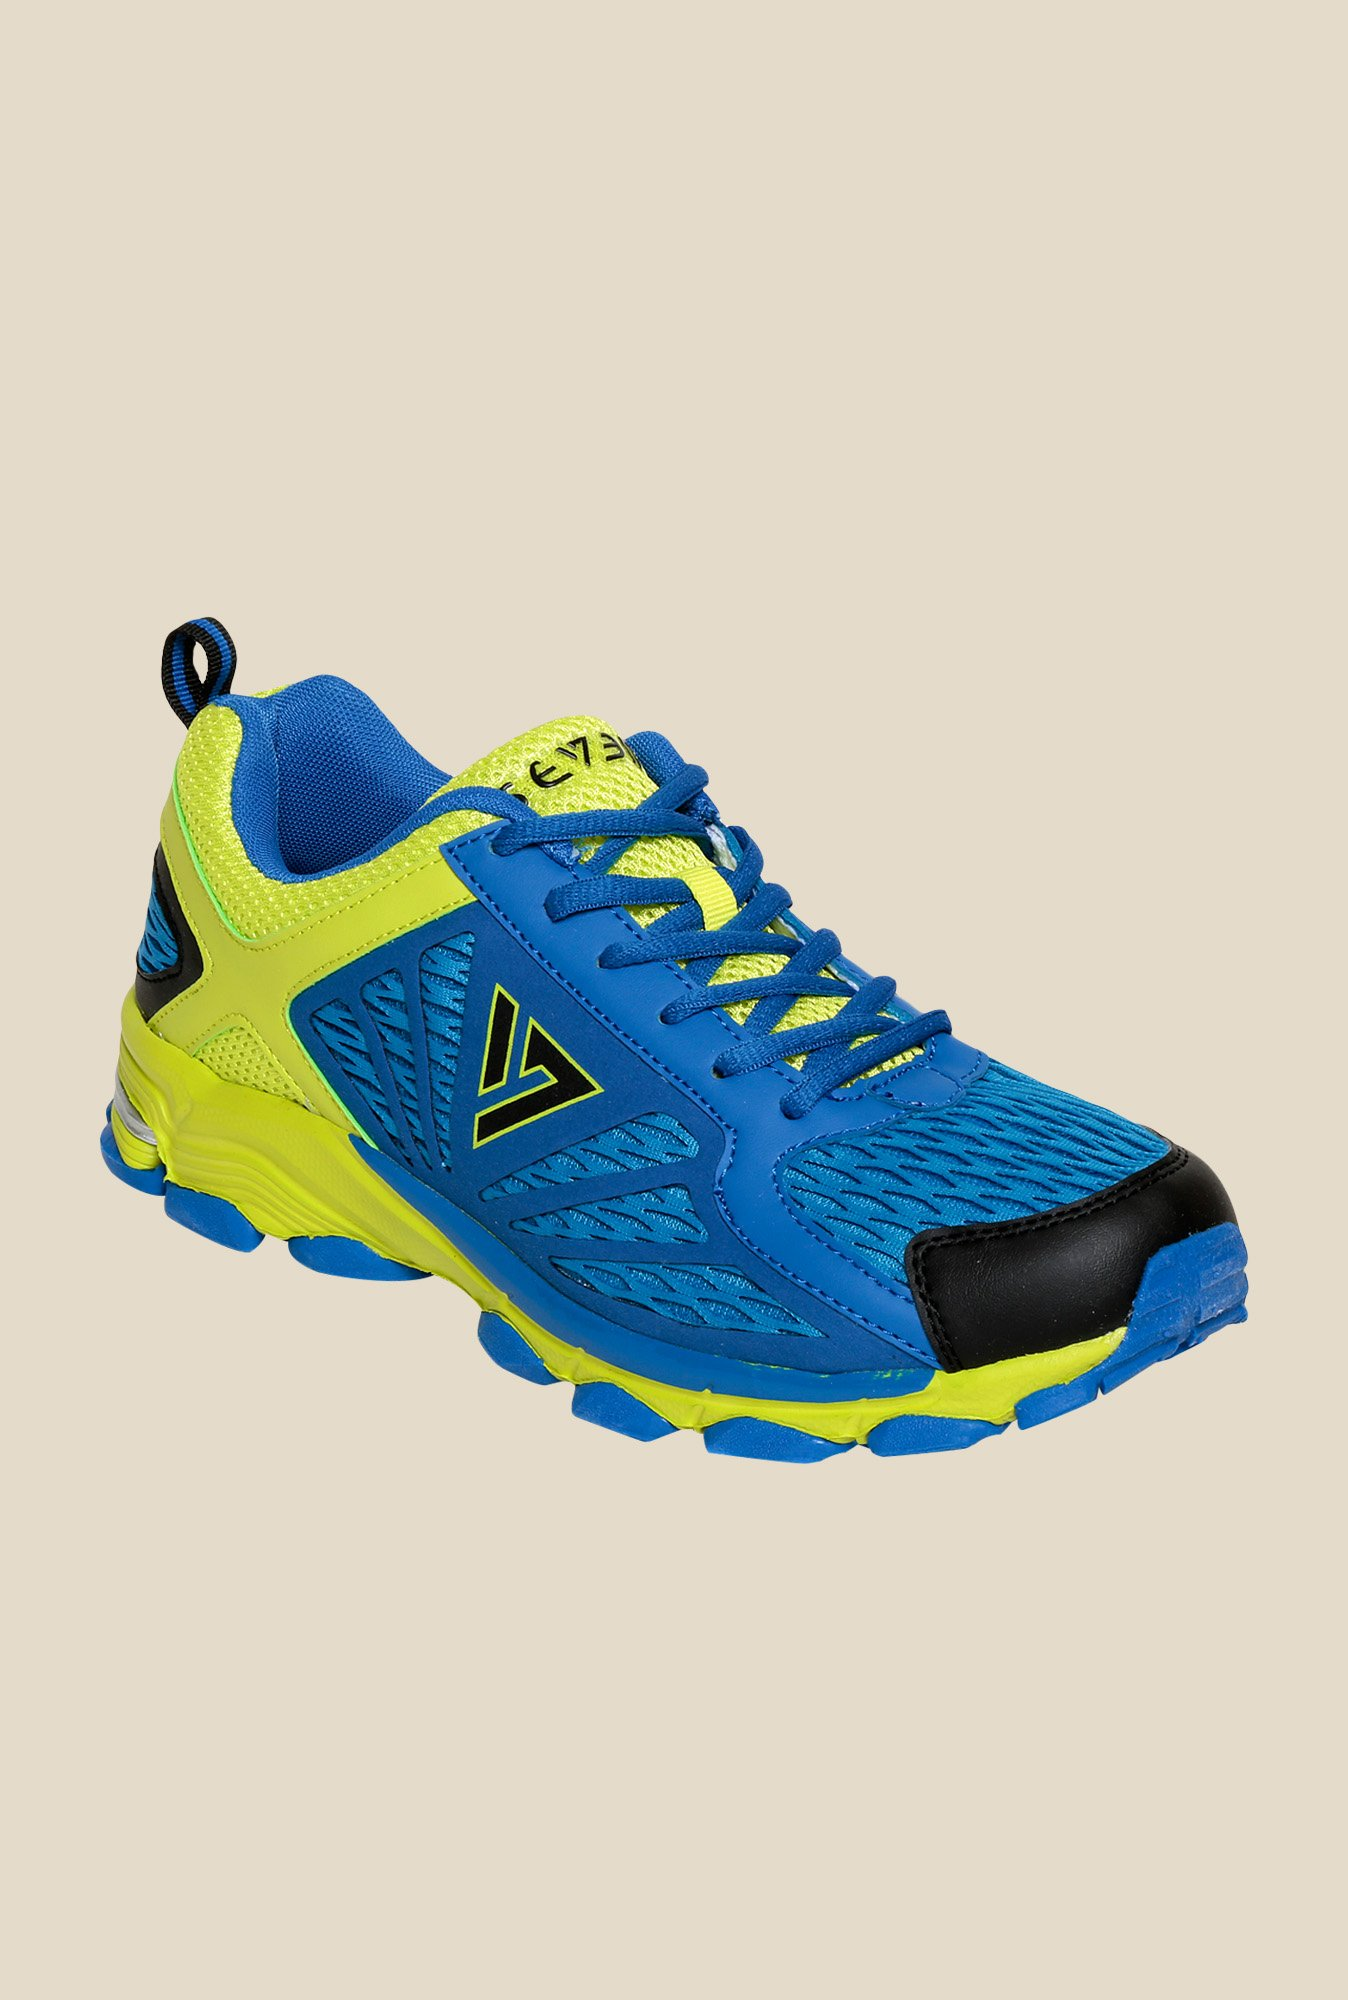 Seven Hogun Blue Atoll & Buttercup Running Shoes